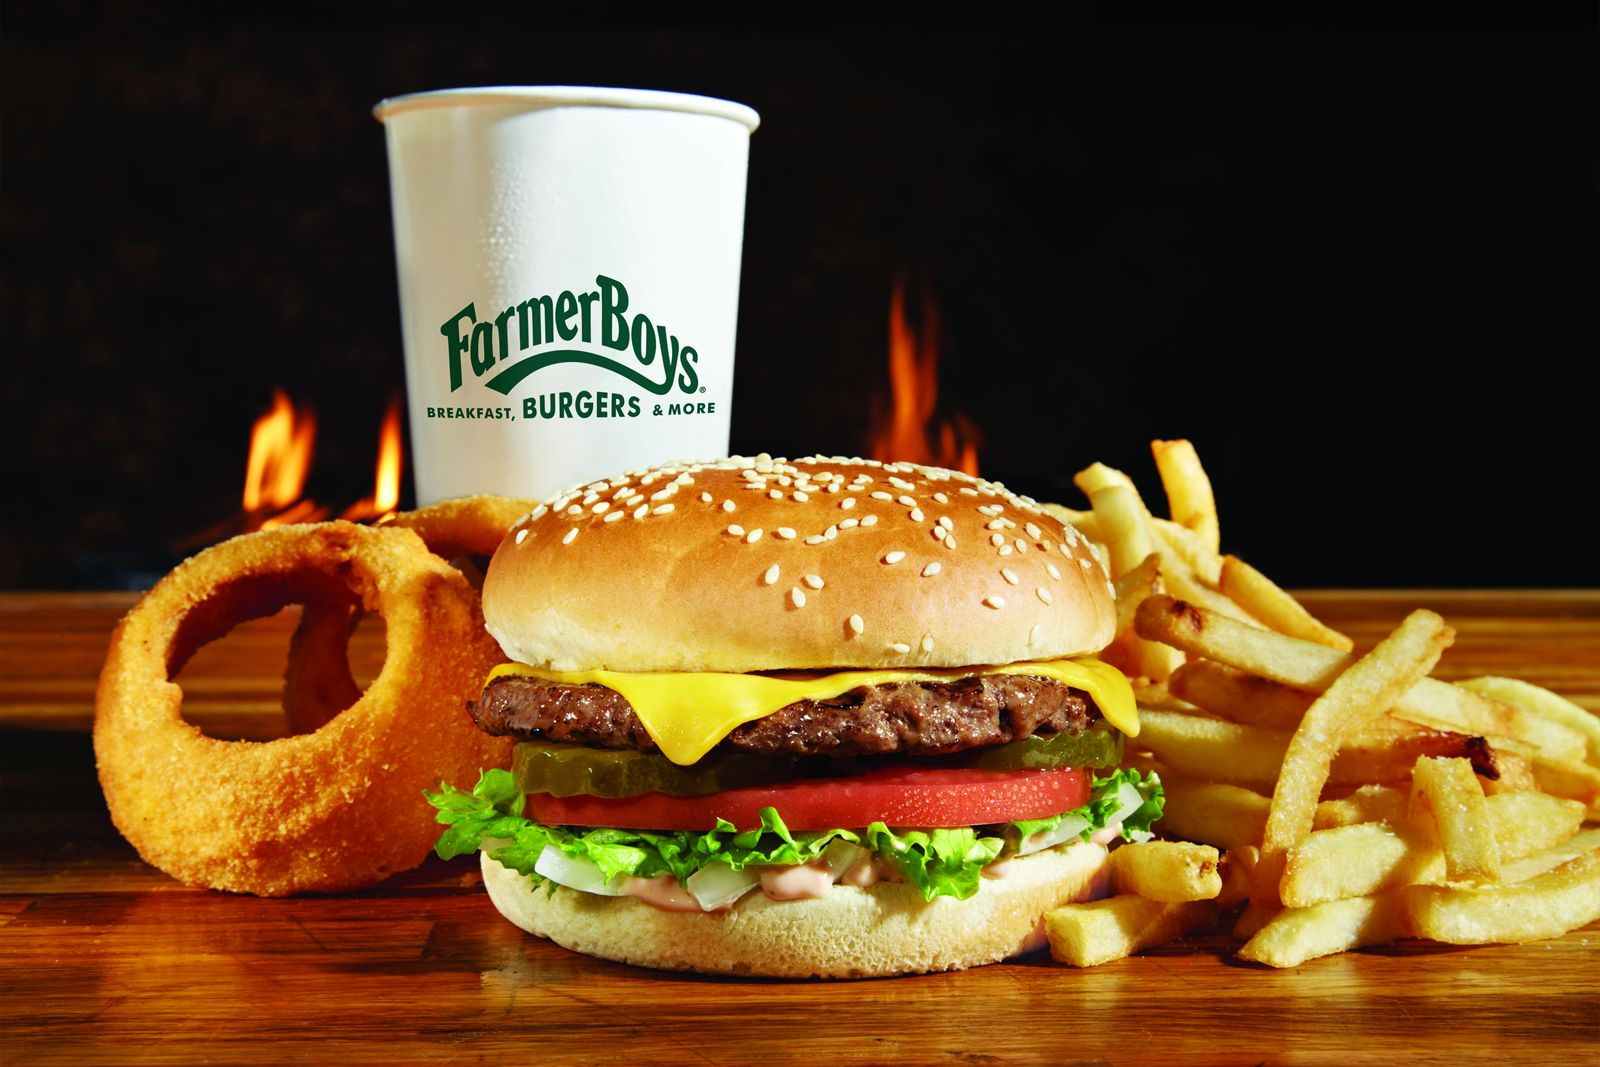 Farmer Boys, the Southern California-based fast casual concept known for its award-winning burgers and exceptional service, will open doors at 23190 Cajalco Expressway in Perris, Calif. in November, with a Grand Opening in January 2020. The new location is the 100th opened by the concept, and marks a homecoming for Farmer Boys, which opened its original restaurant in Perris in 1981.